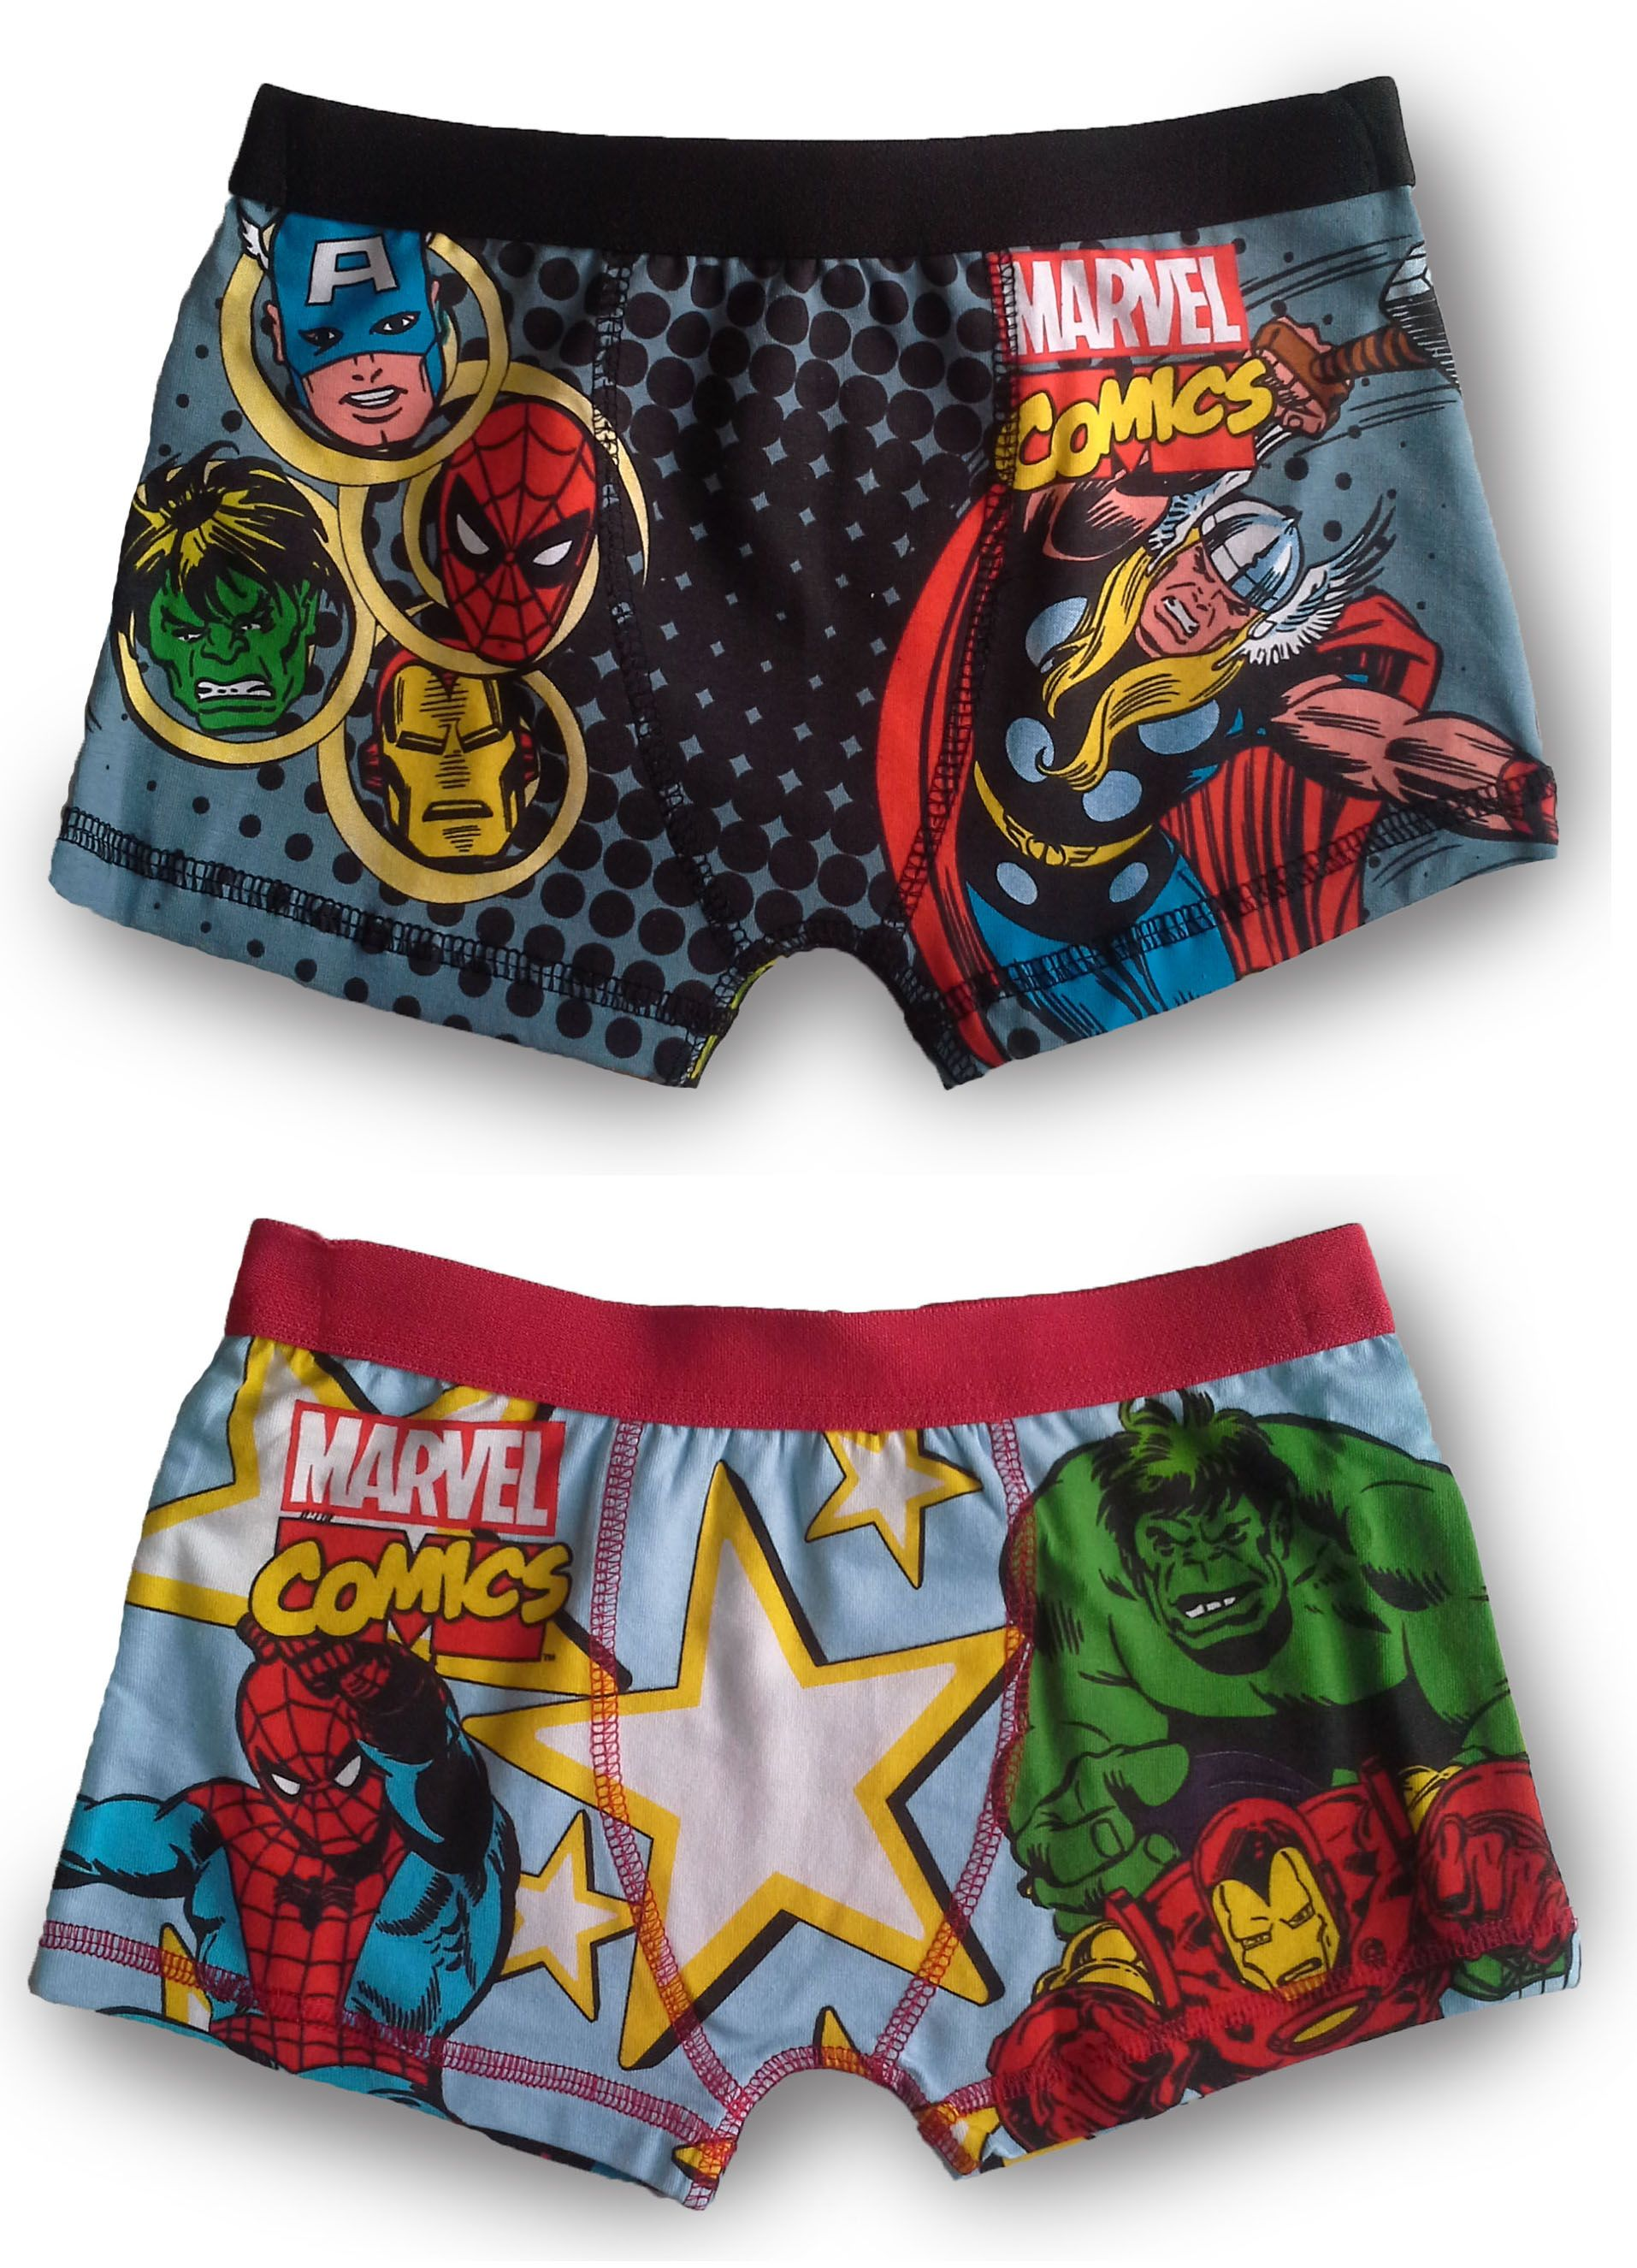 Marvel Avengers Boxer Shorts Underwear Superhero Comic Trunks Boys Kids Size